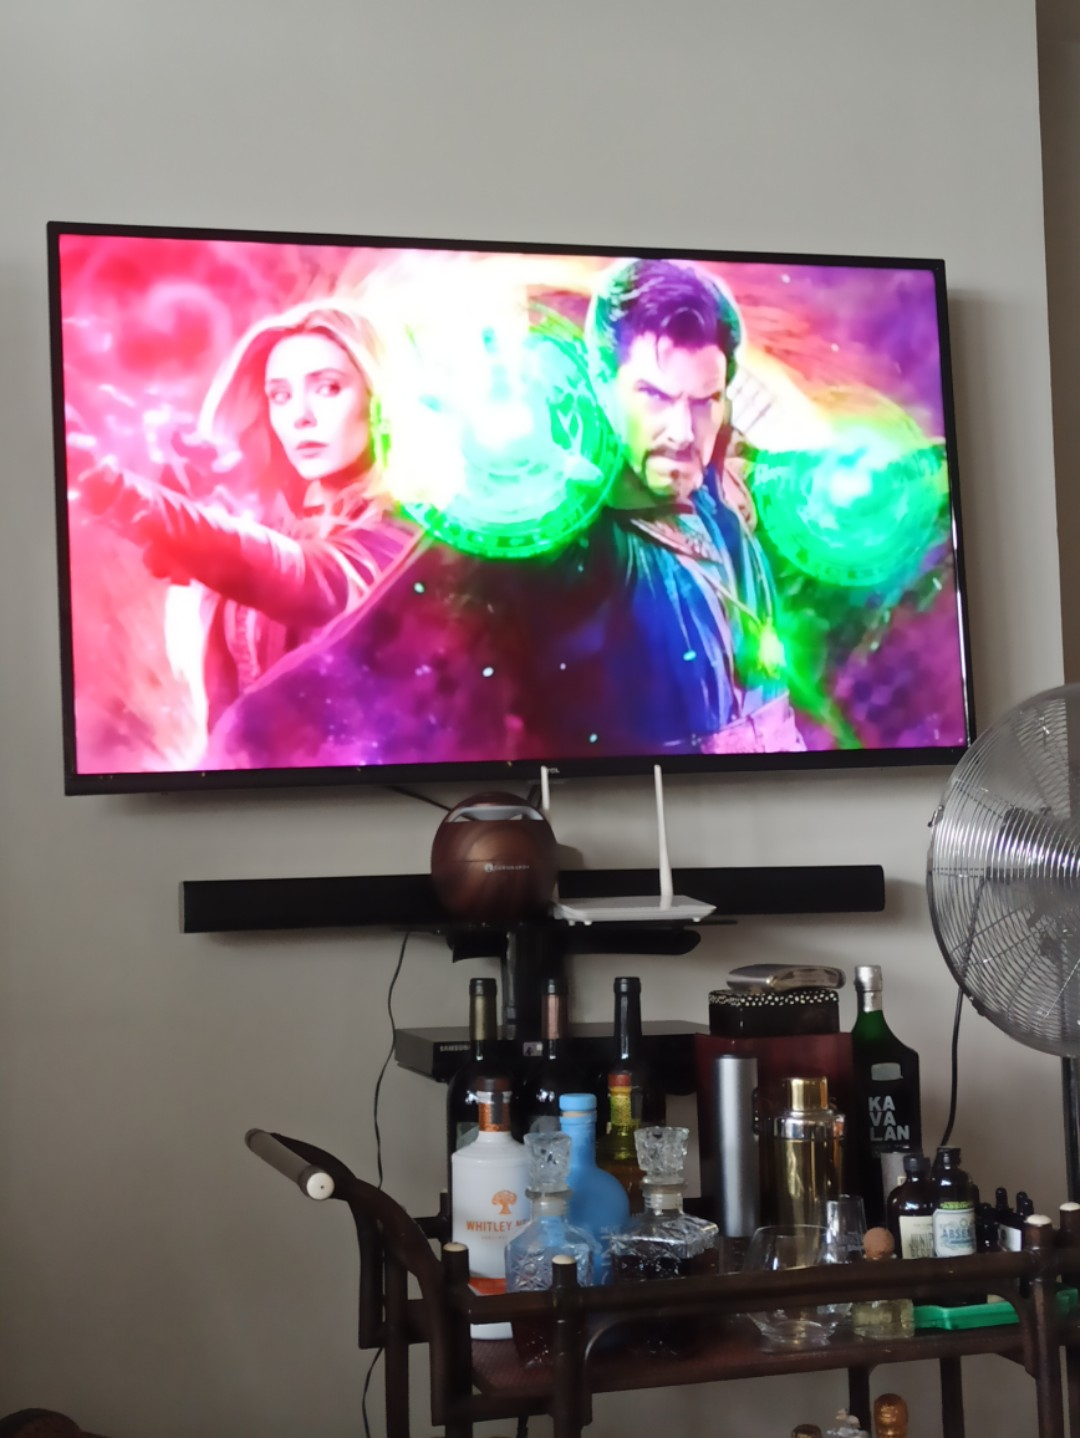 Tcl 50 Inch Uhd Smart Tv P65 Electronics Tvs Entertainment Systems On Carousell